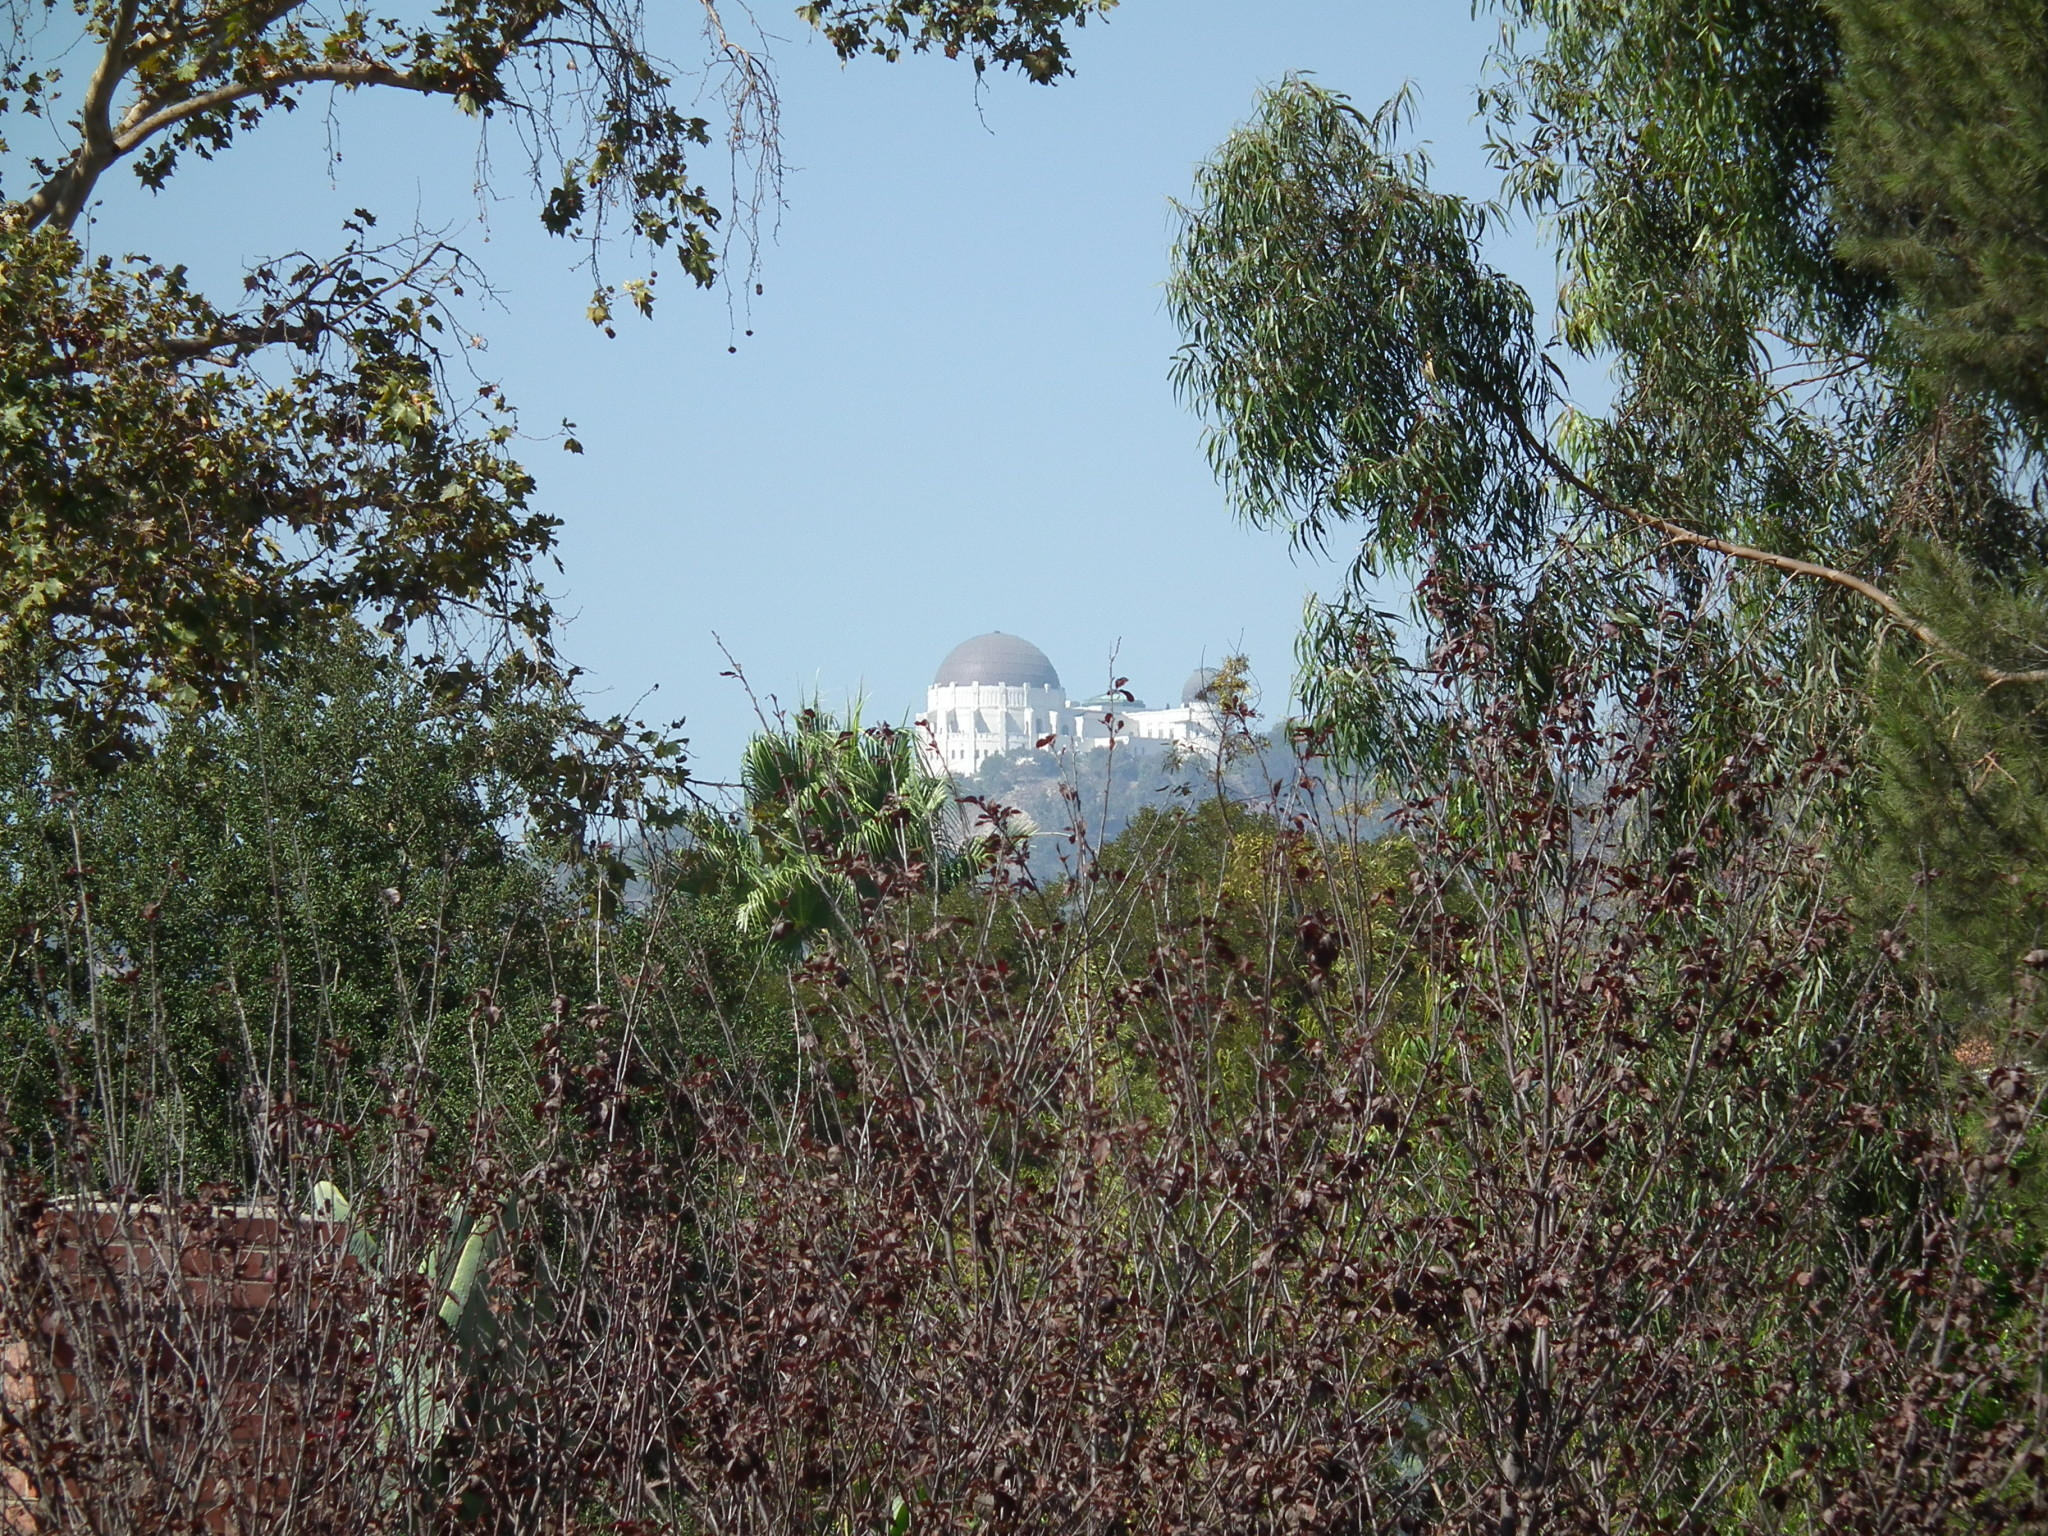 griffith observatory, los feliz, franklin hills, view property, real estate development